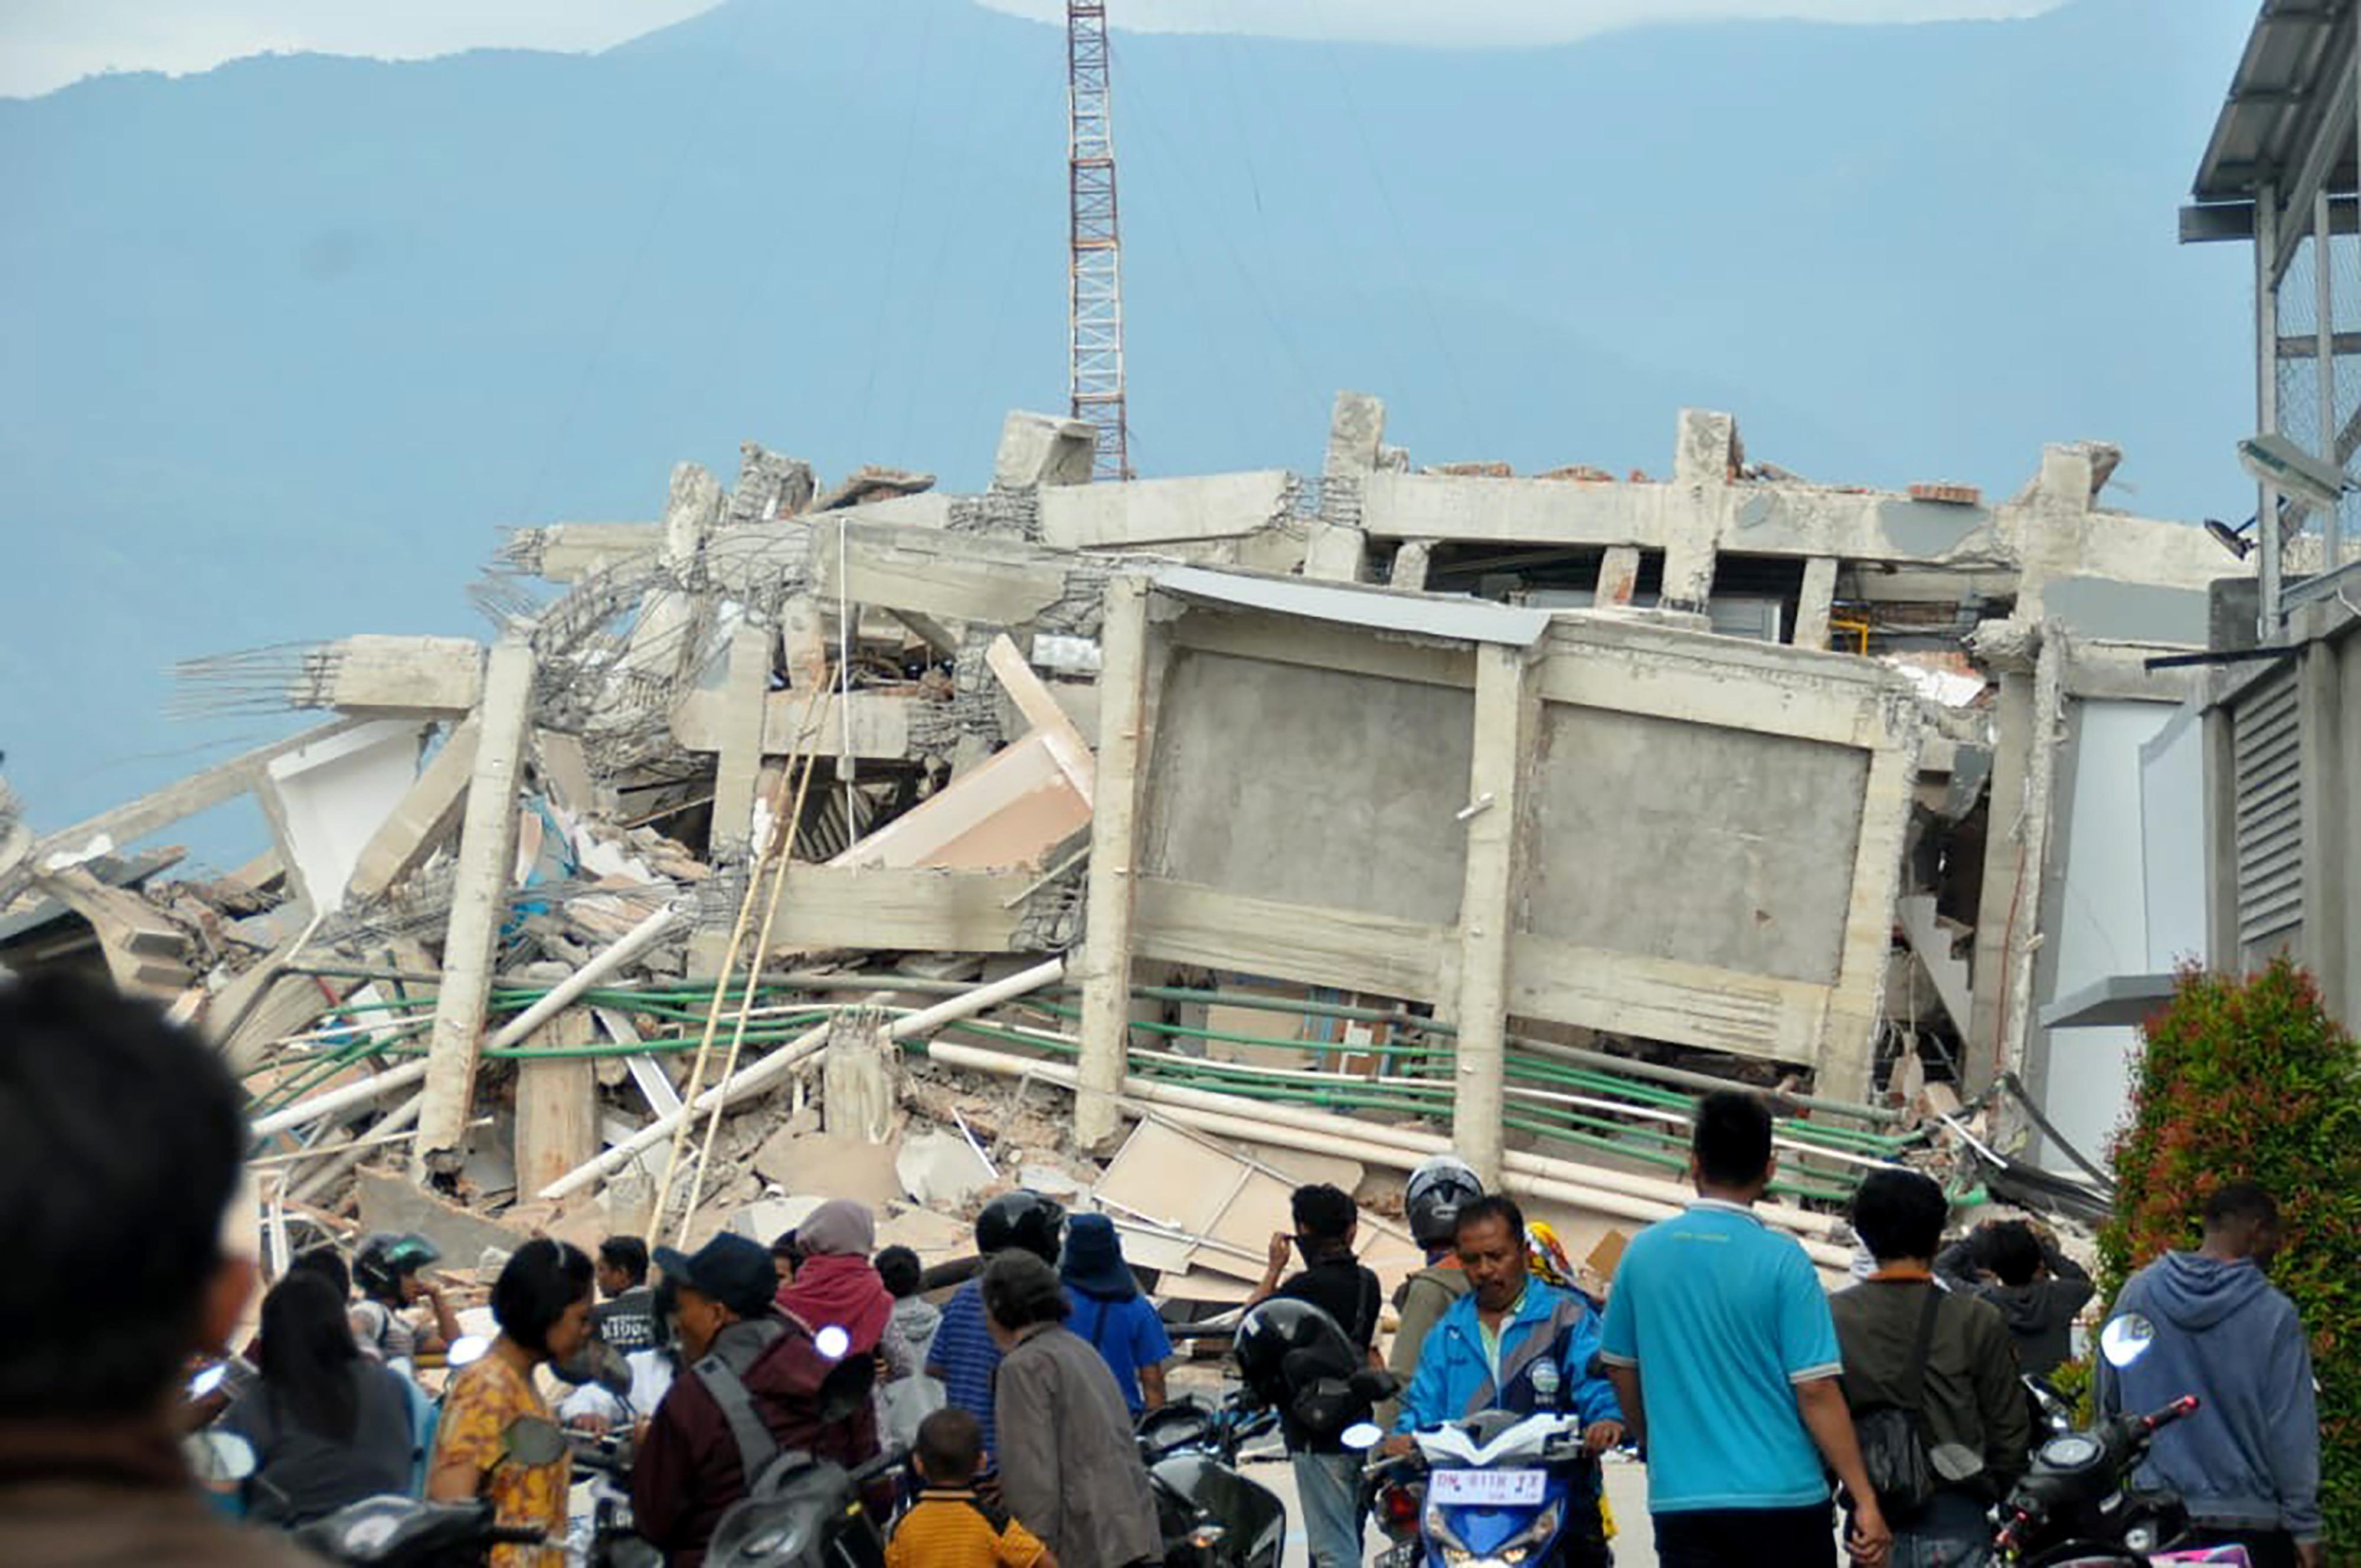 Residents gather to look at a collapsed building after an earthquake and tsunami hit Palu.